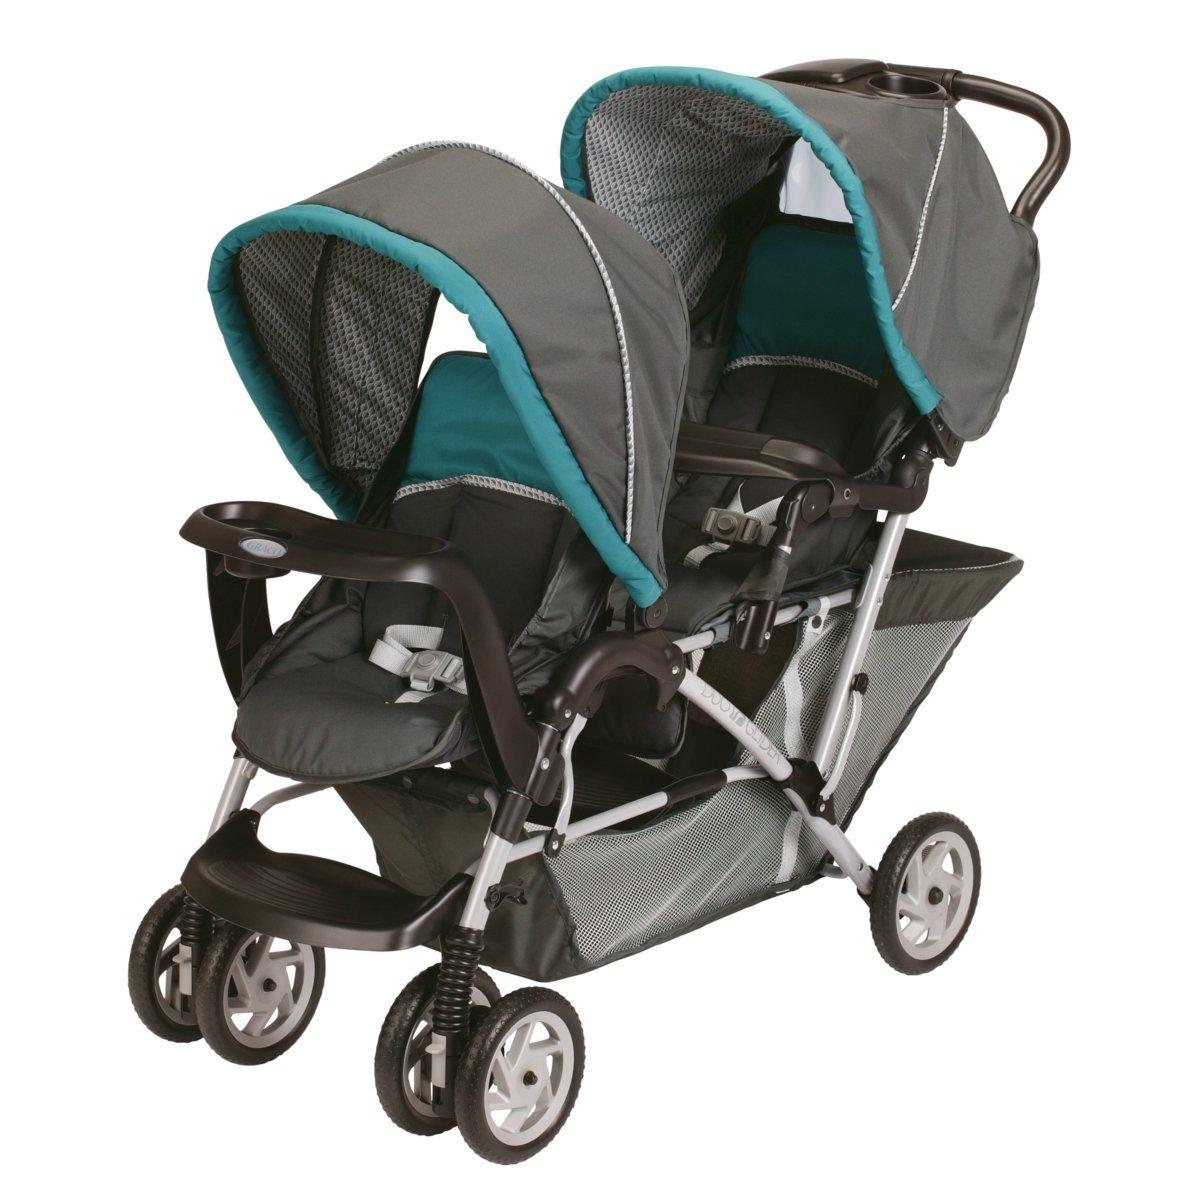 Amazon.com : Graco DuoGlider Classic Connect Stroller, Dragonfly ...